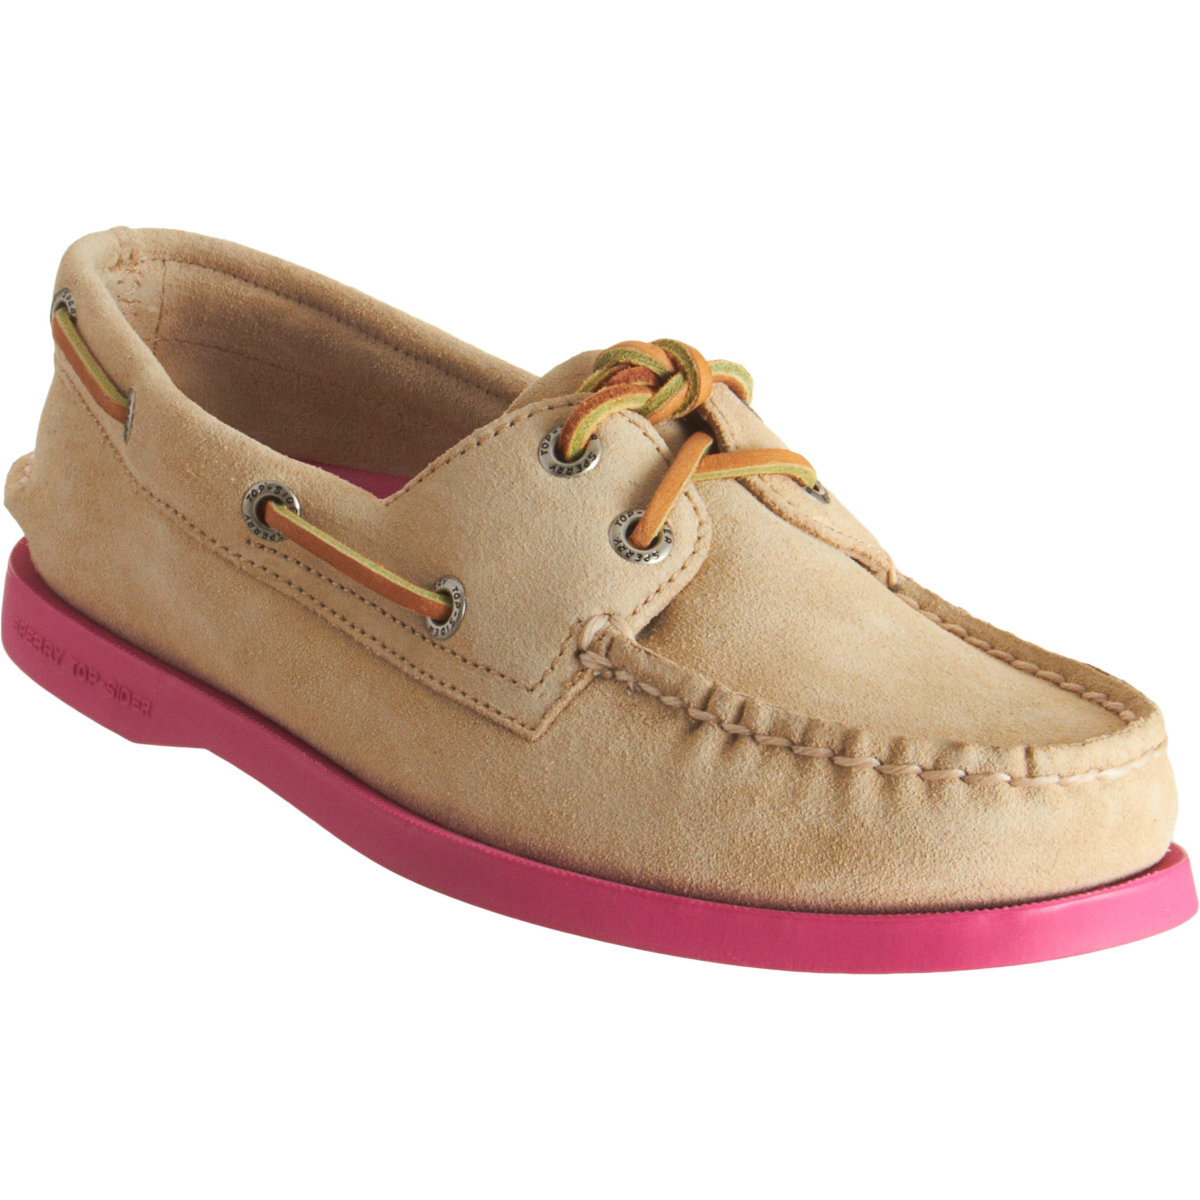 Best Made In Maine Boat Shoes